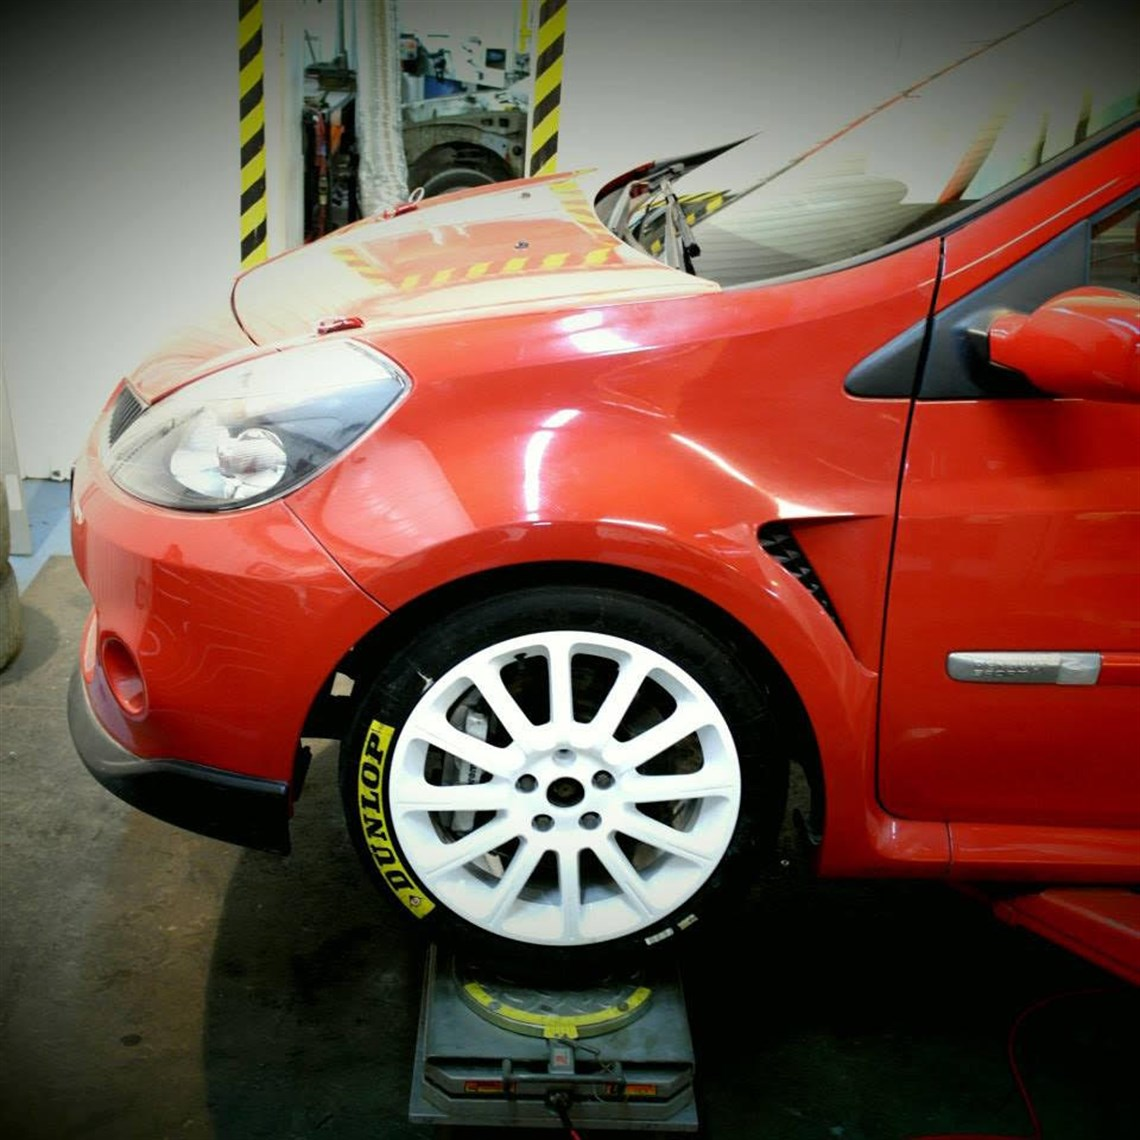 Renault Race Car: Renault Clio 3 RS Race /Rally Car, N Spec